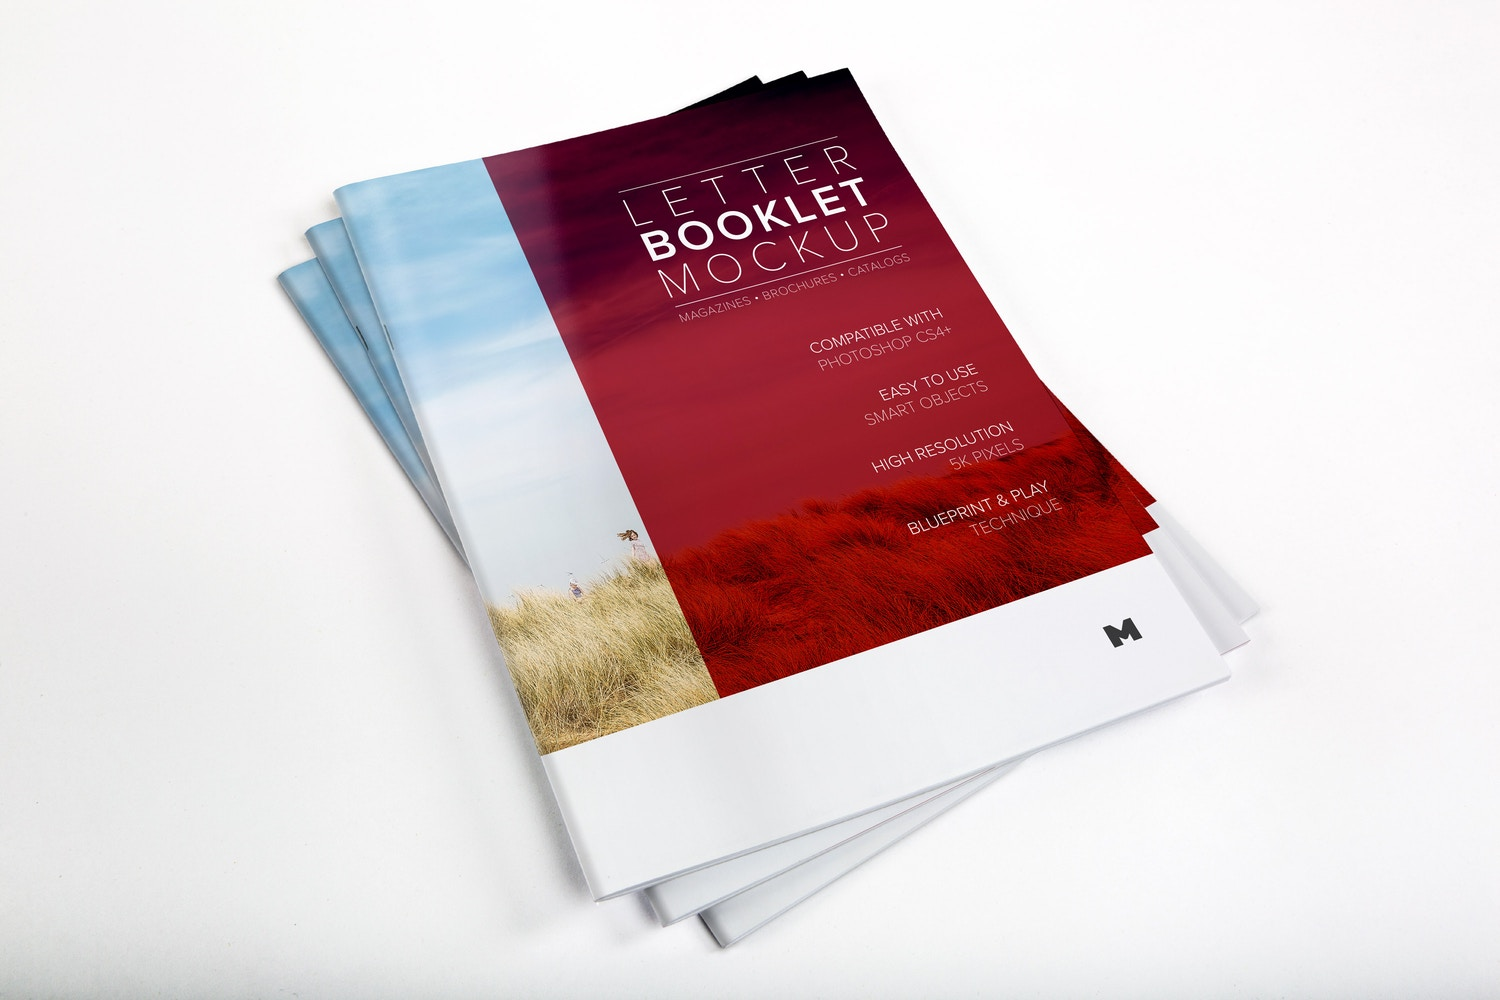 Letter Booklet Stack Cover Mockup 01 by Original Mockups on Original Mockups